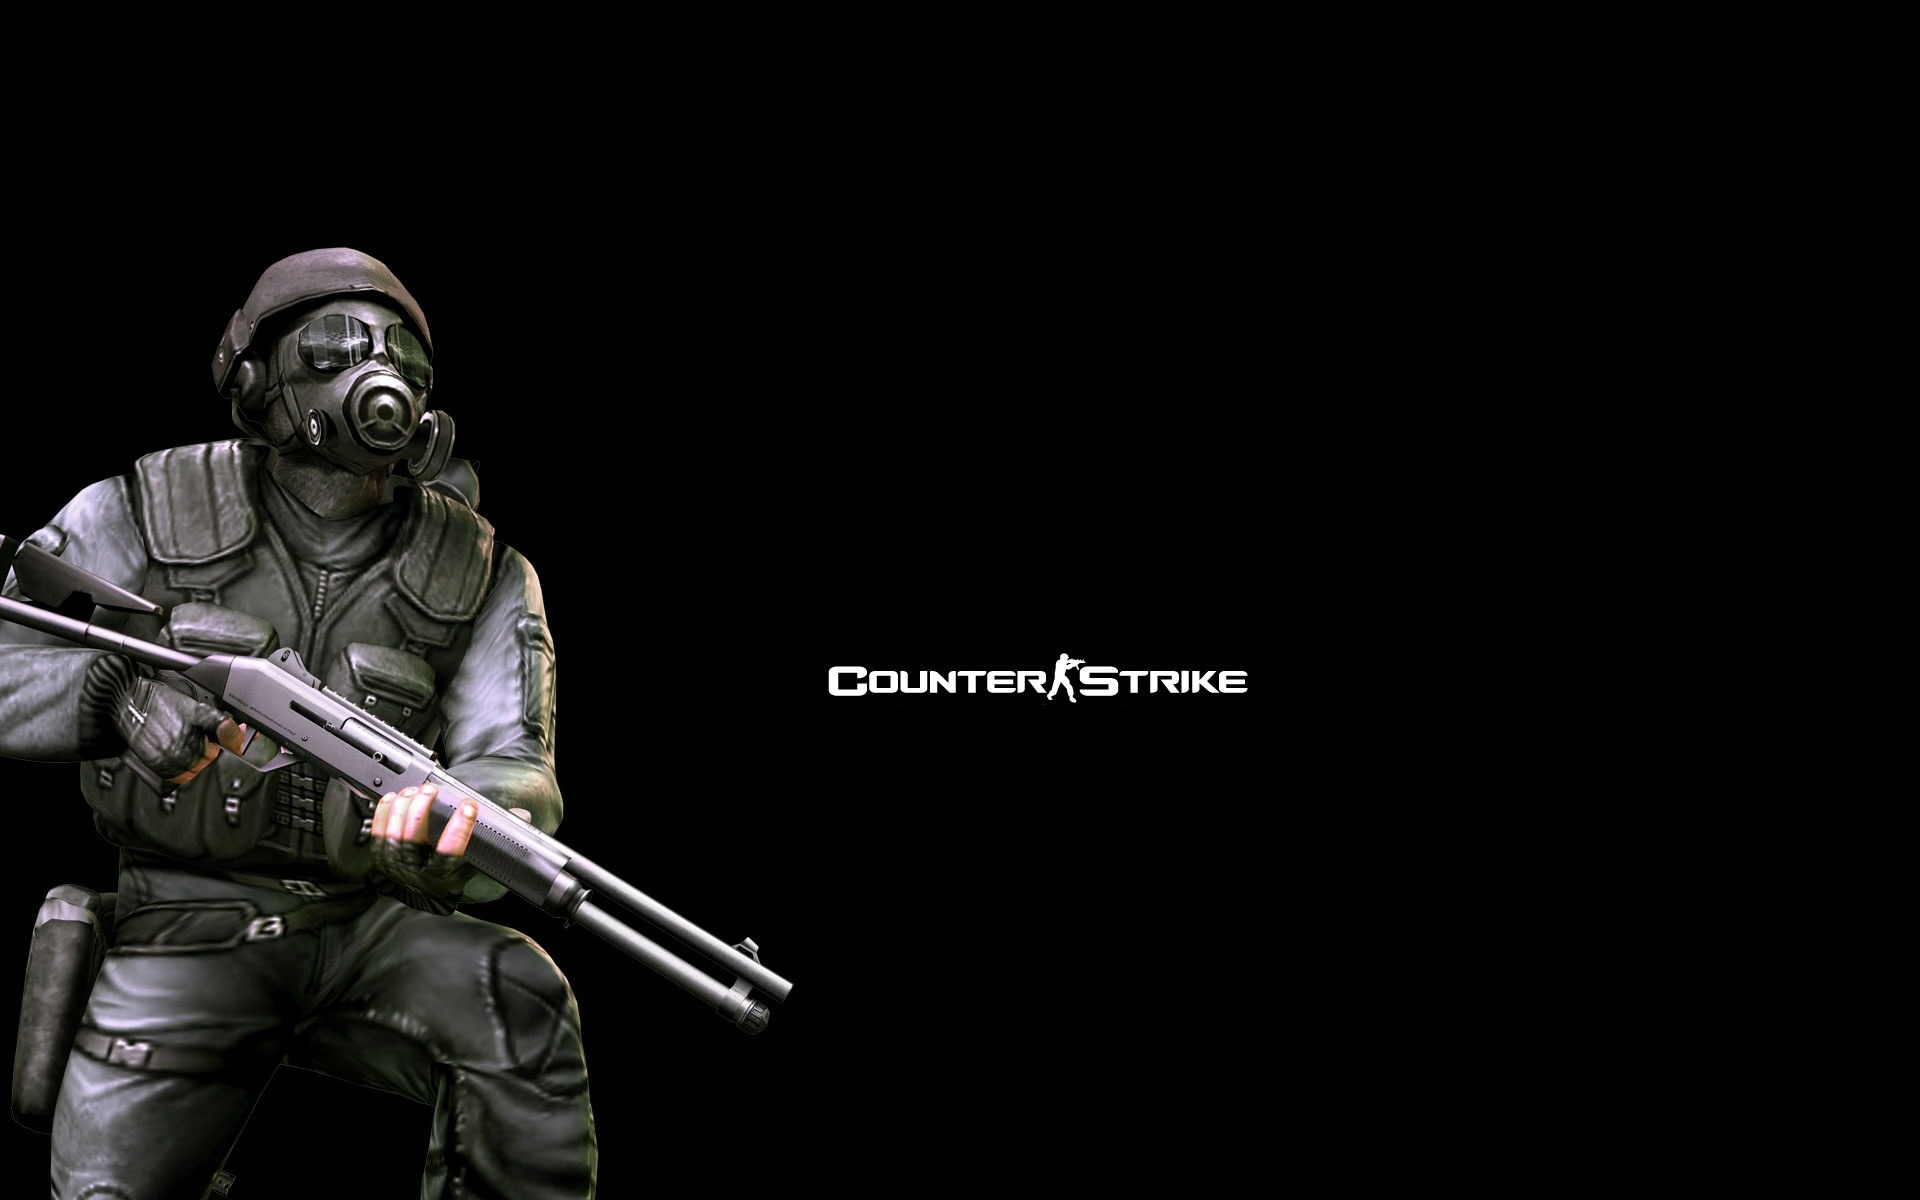 Counter Strike 16 Wallpaper Dota 2 and E Sports Geeks 1920x1200